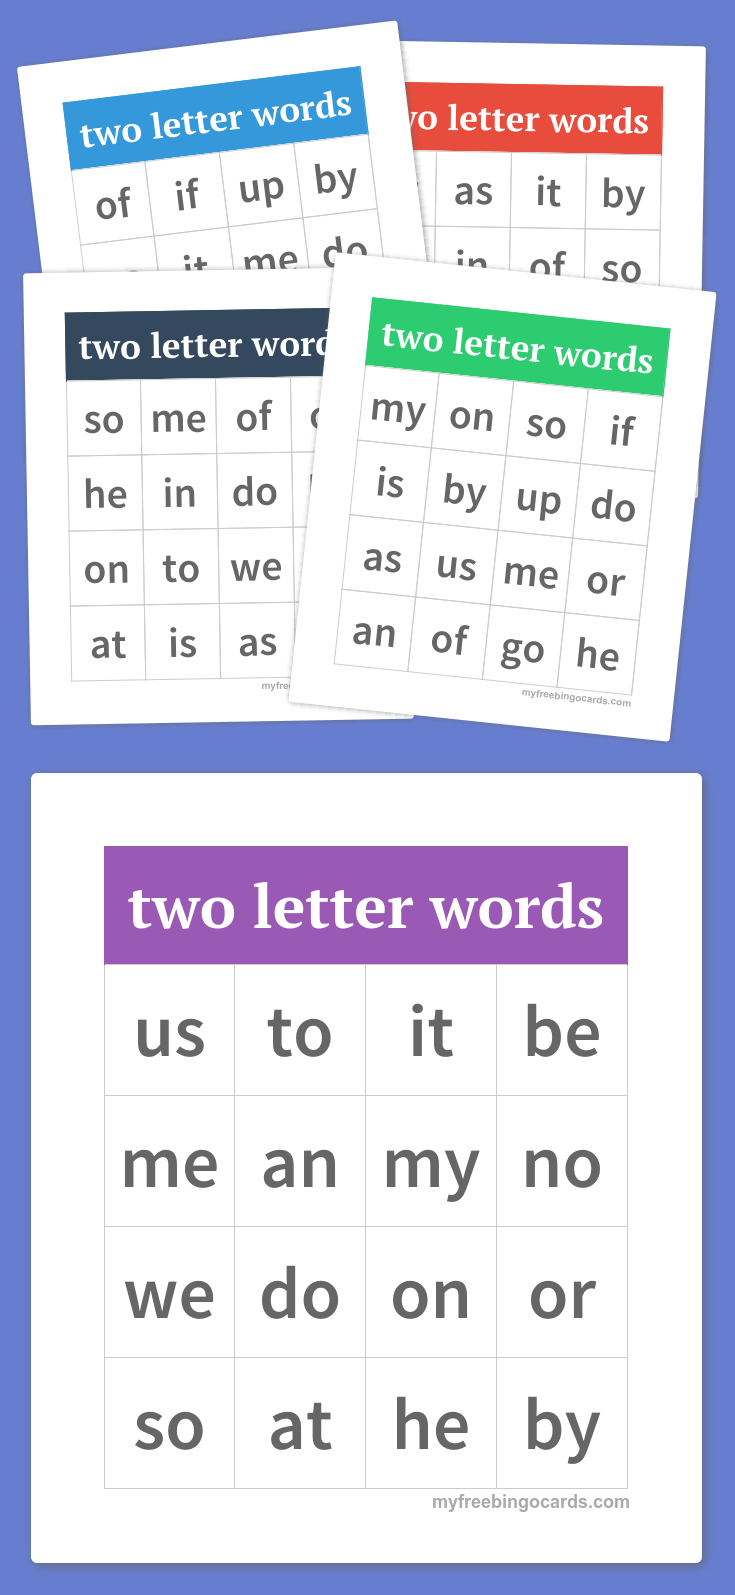 Free Printable Bingo Cards | Two Letter Words, Word Bingo